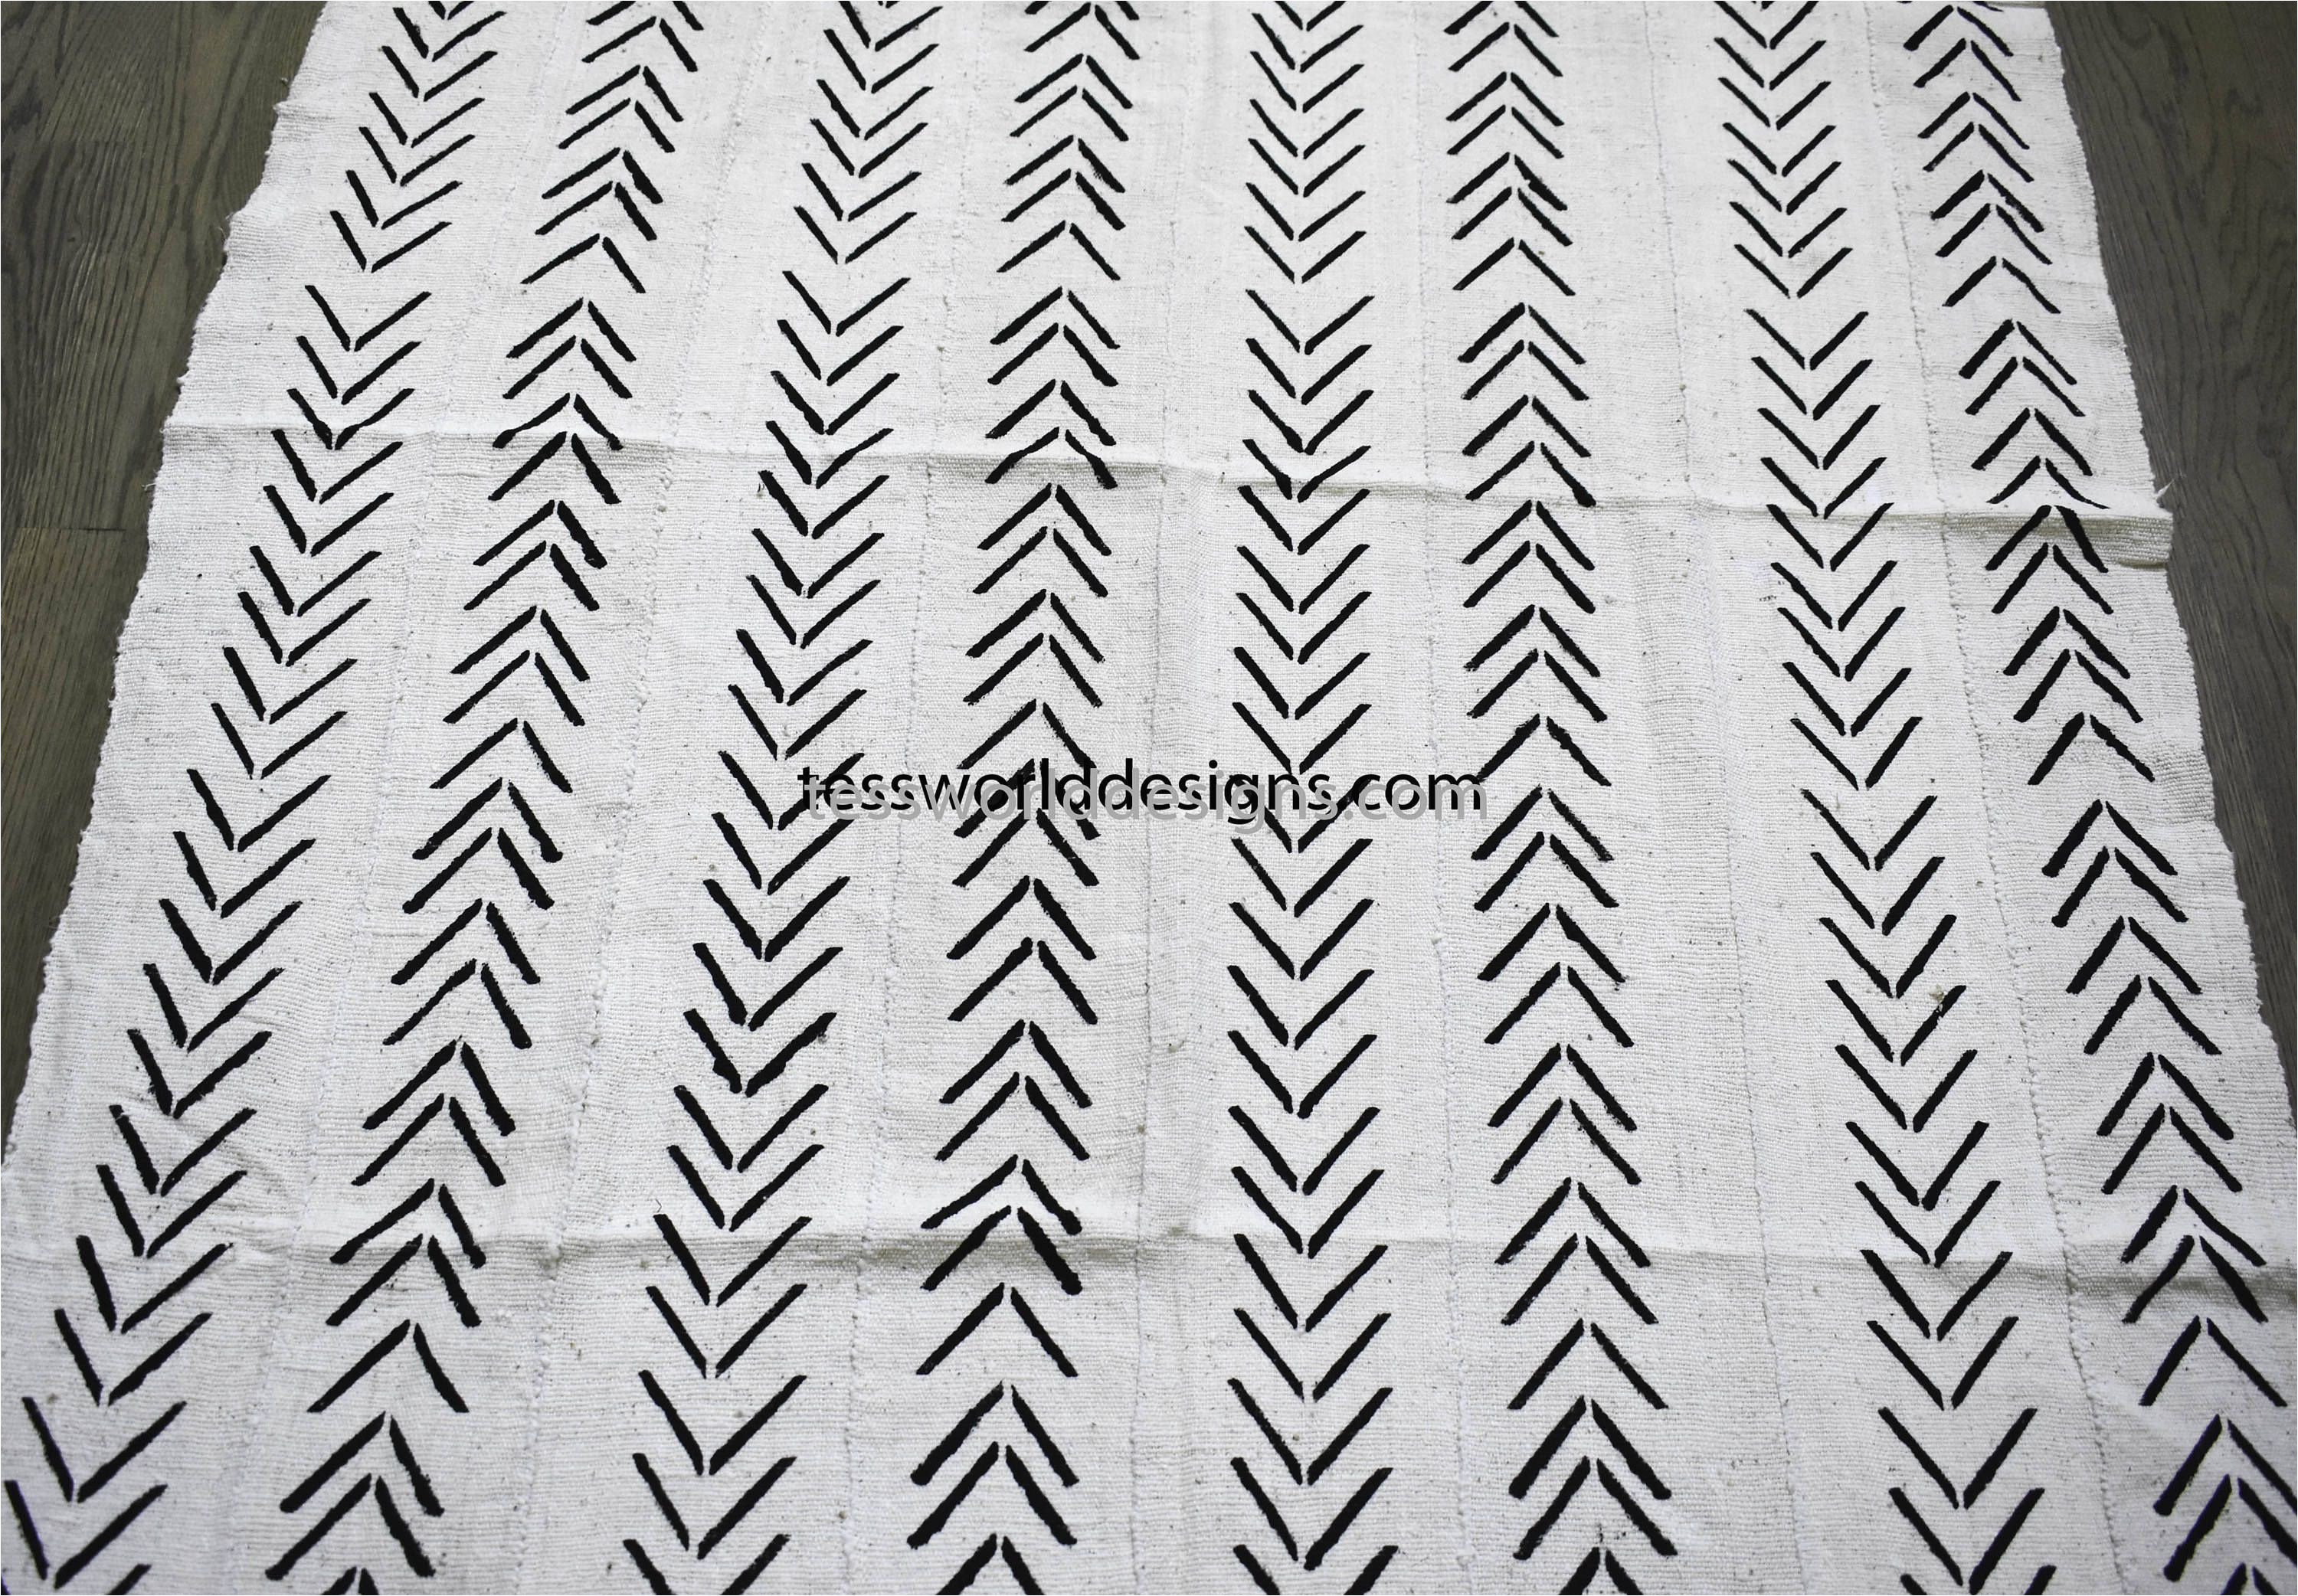 mudcloth fabric by the yard 1628 best tess world designs images in 2019 african fabric